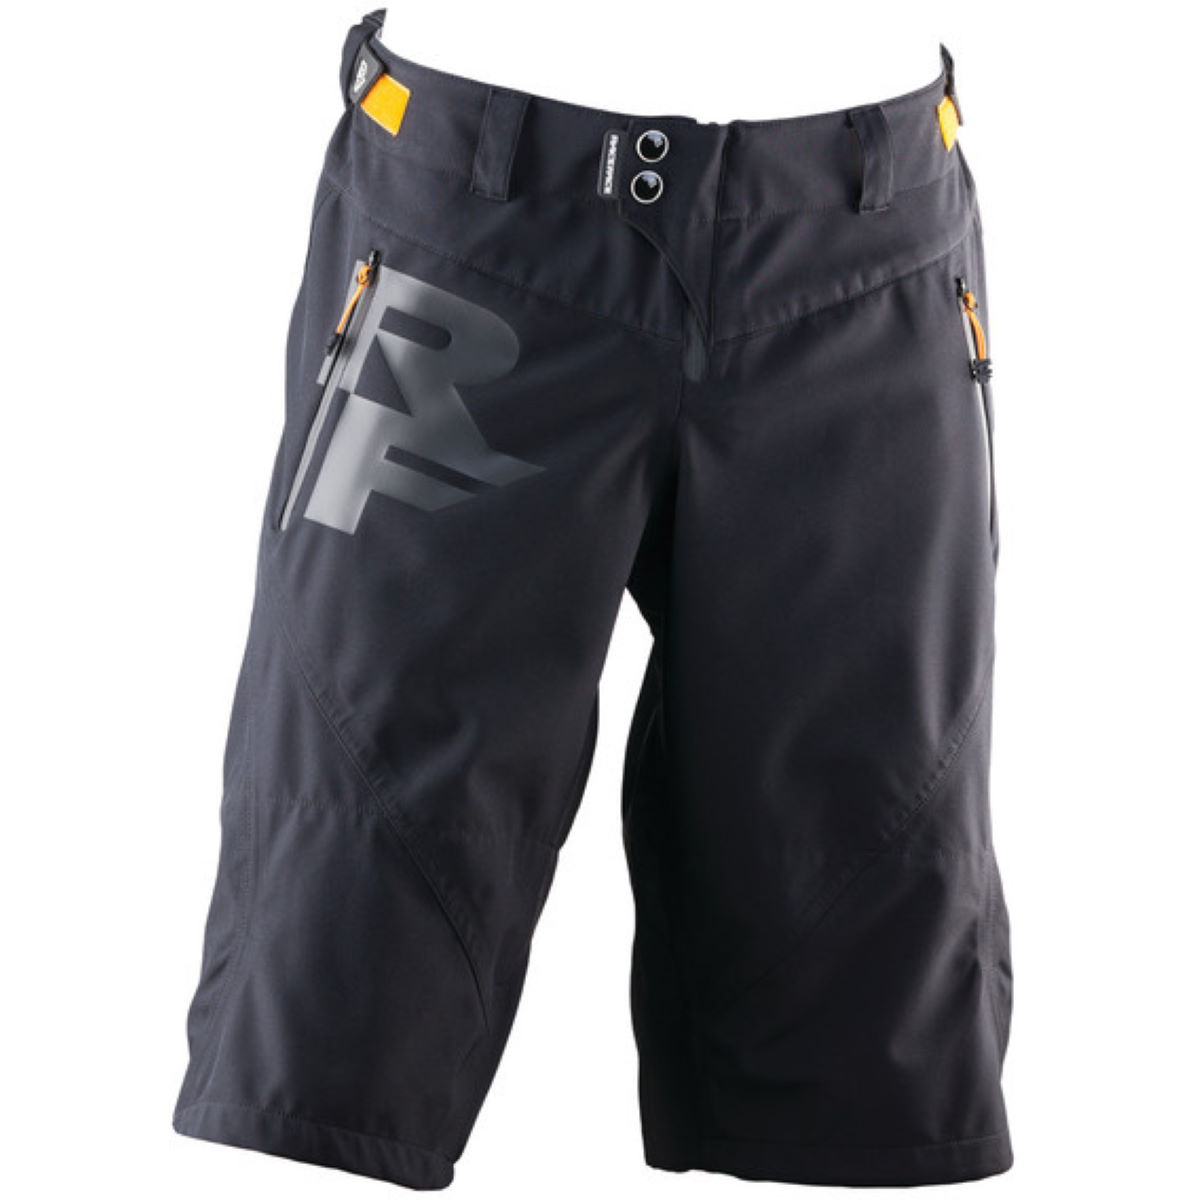 Short Race Face Agent (hiver) - XXL Noir Shorts amples